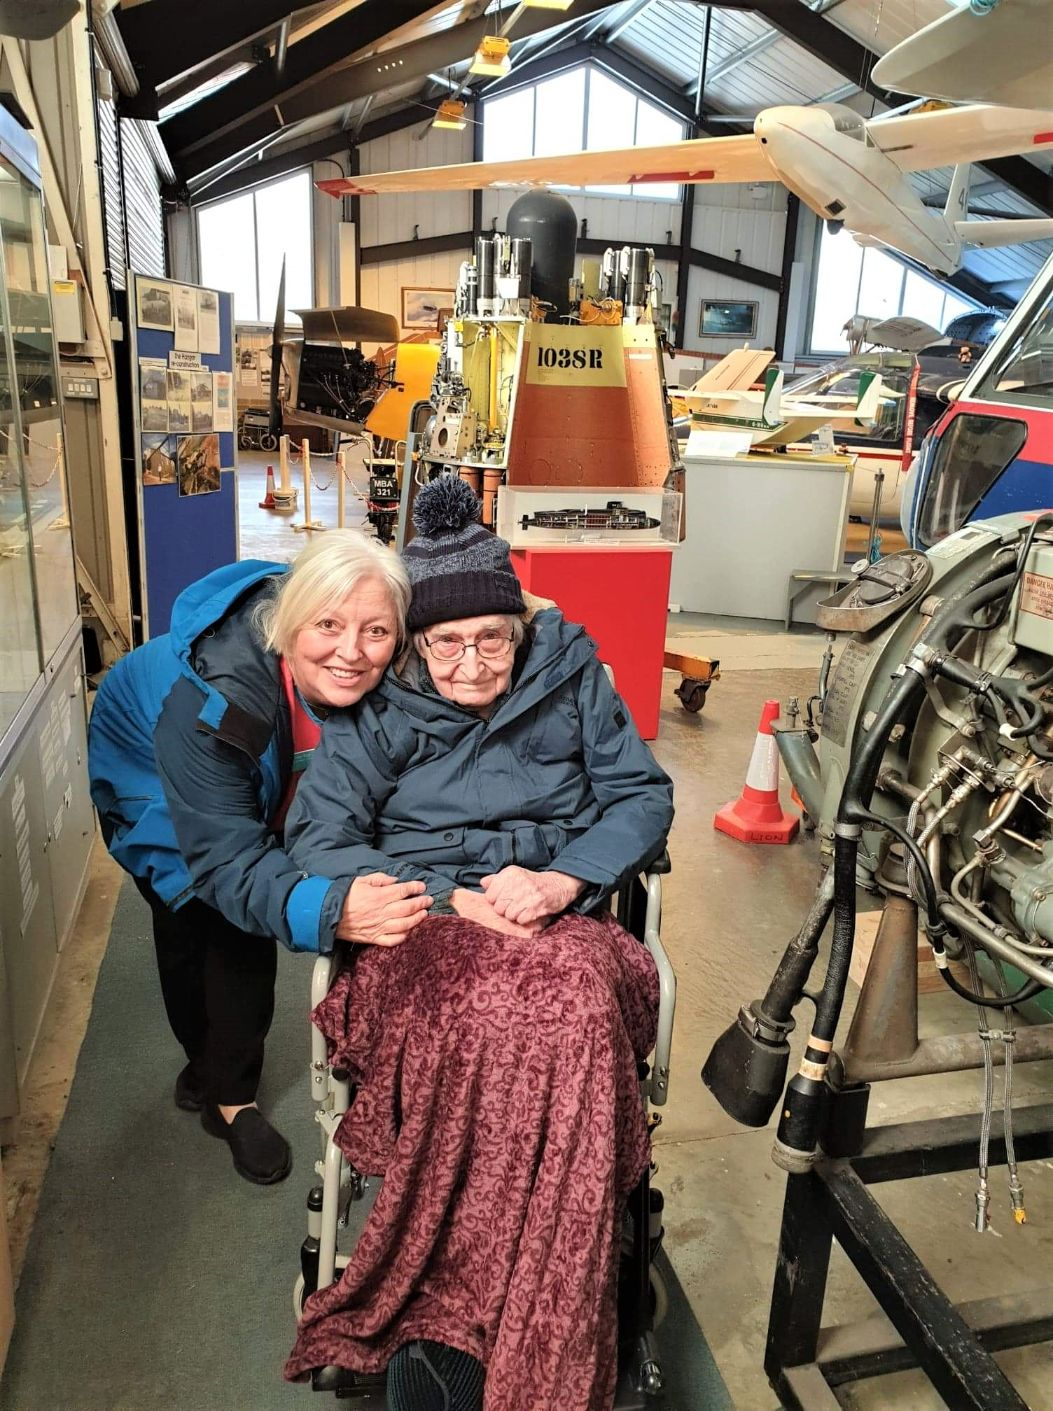 Woodbury House Care Home, Berkshire-Irene with John enjoying their trip to the aviation museum